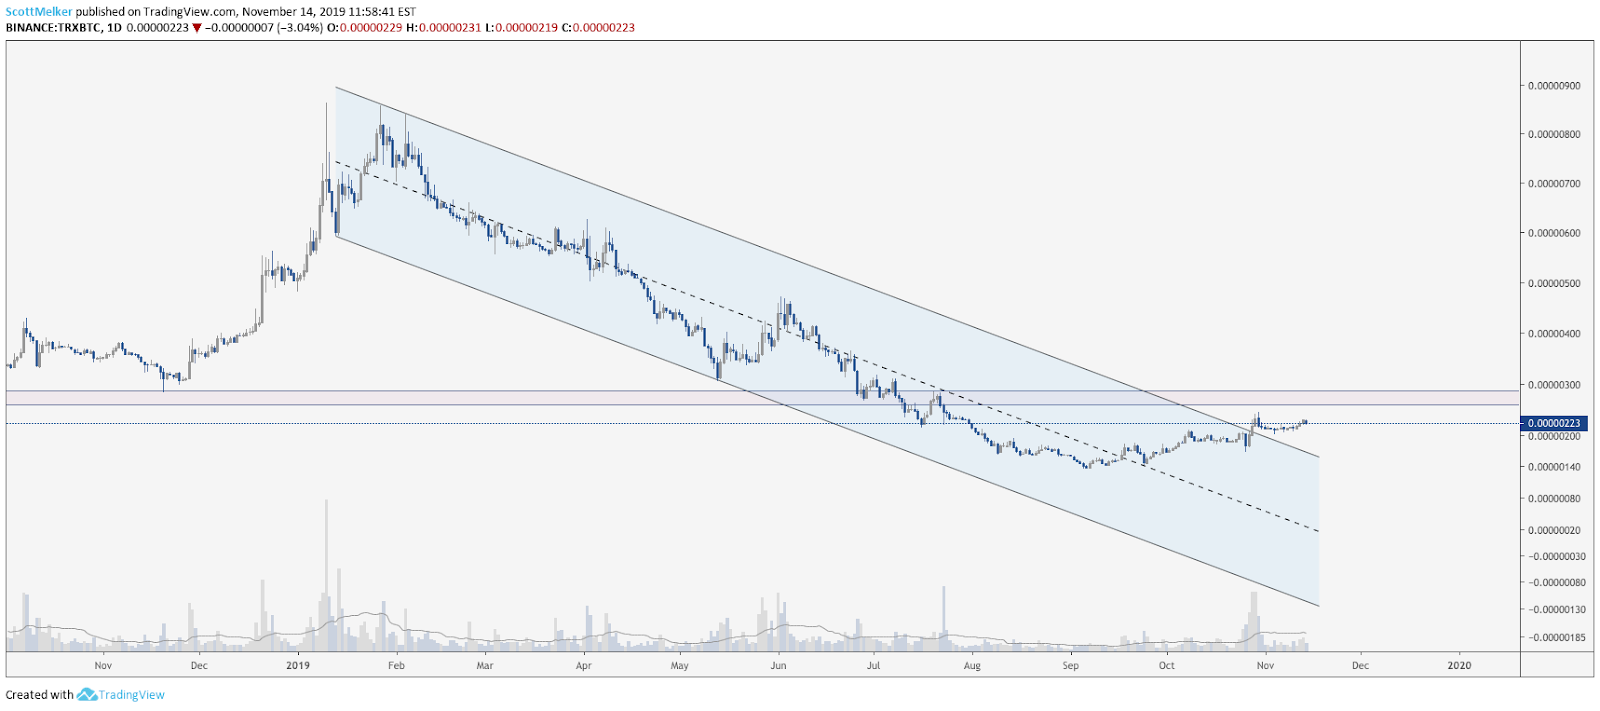 TRX BTC daily chart. Source: TradingView